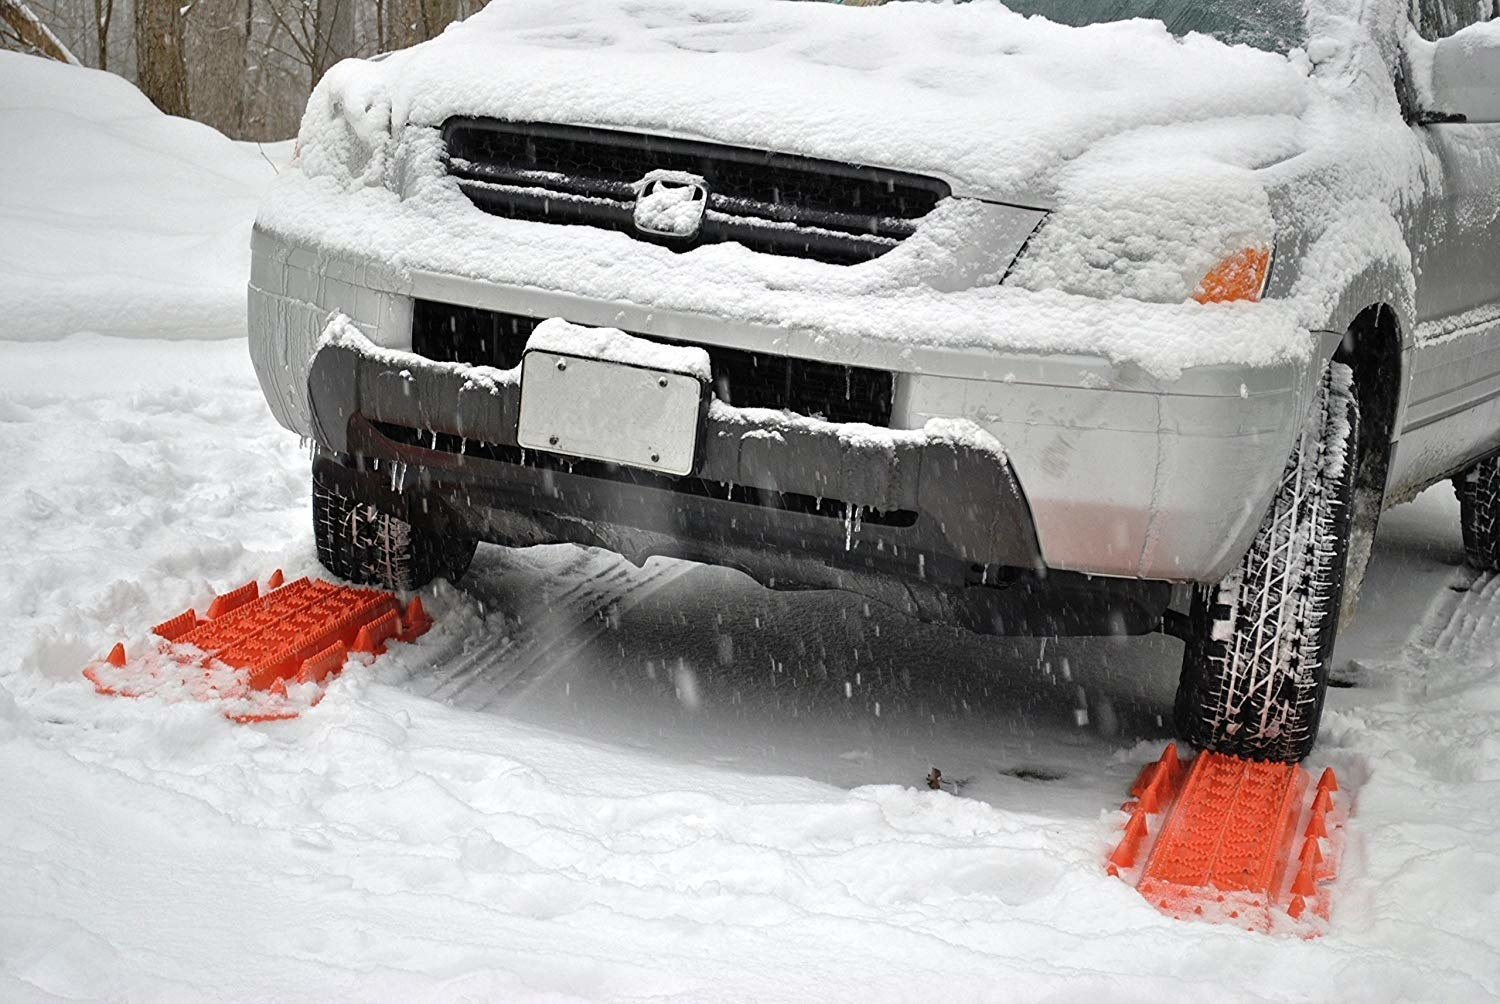 A car using the escape tracks in the snow